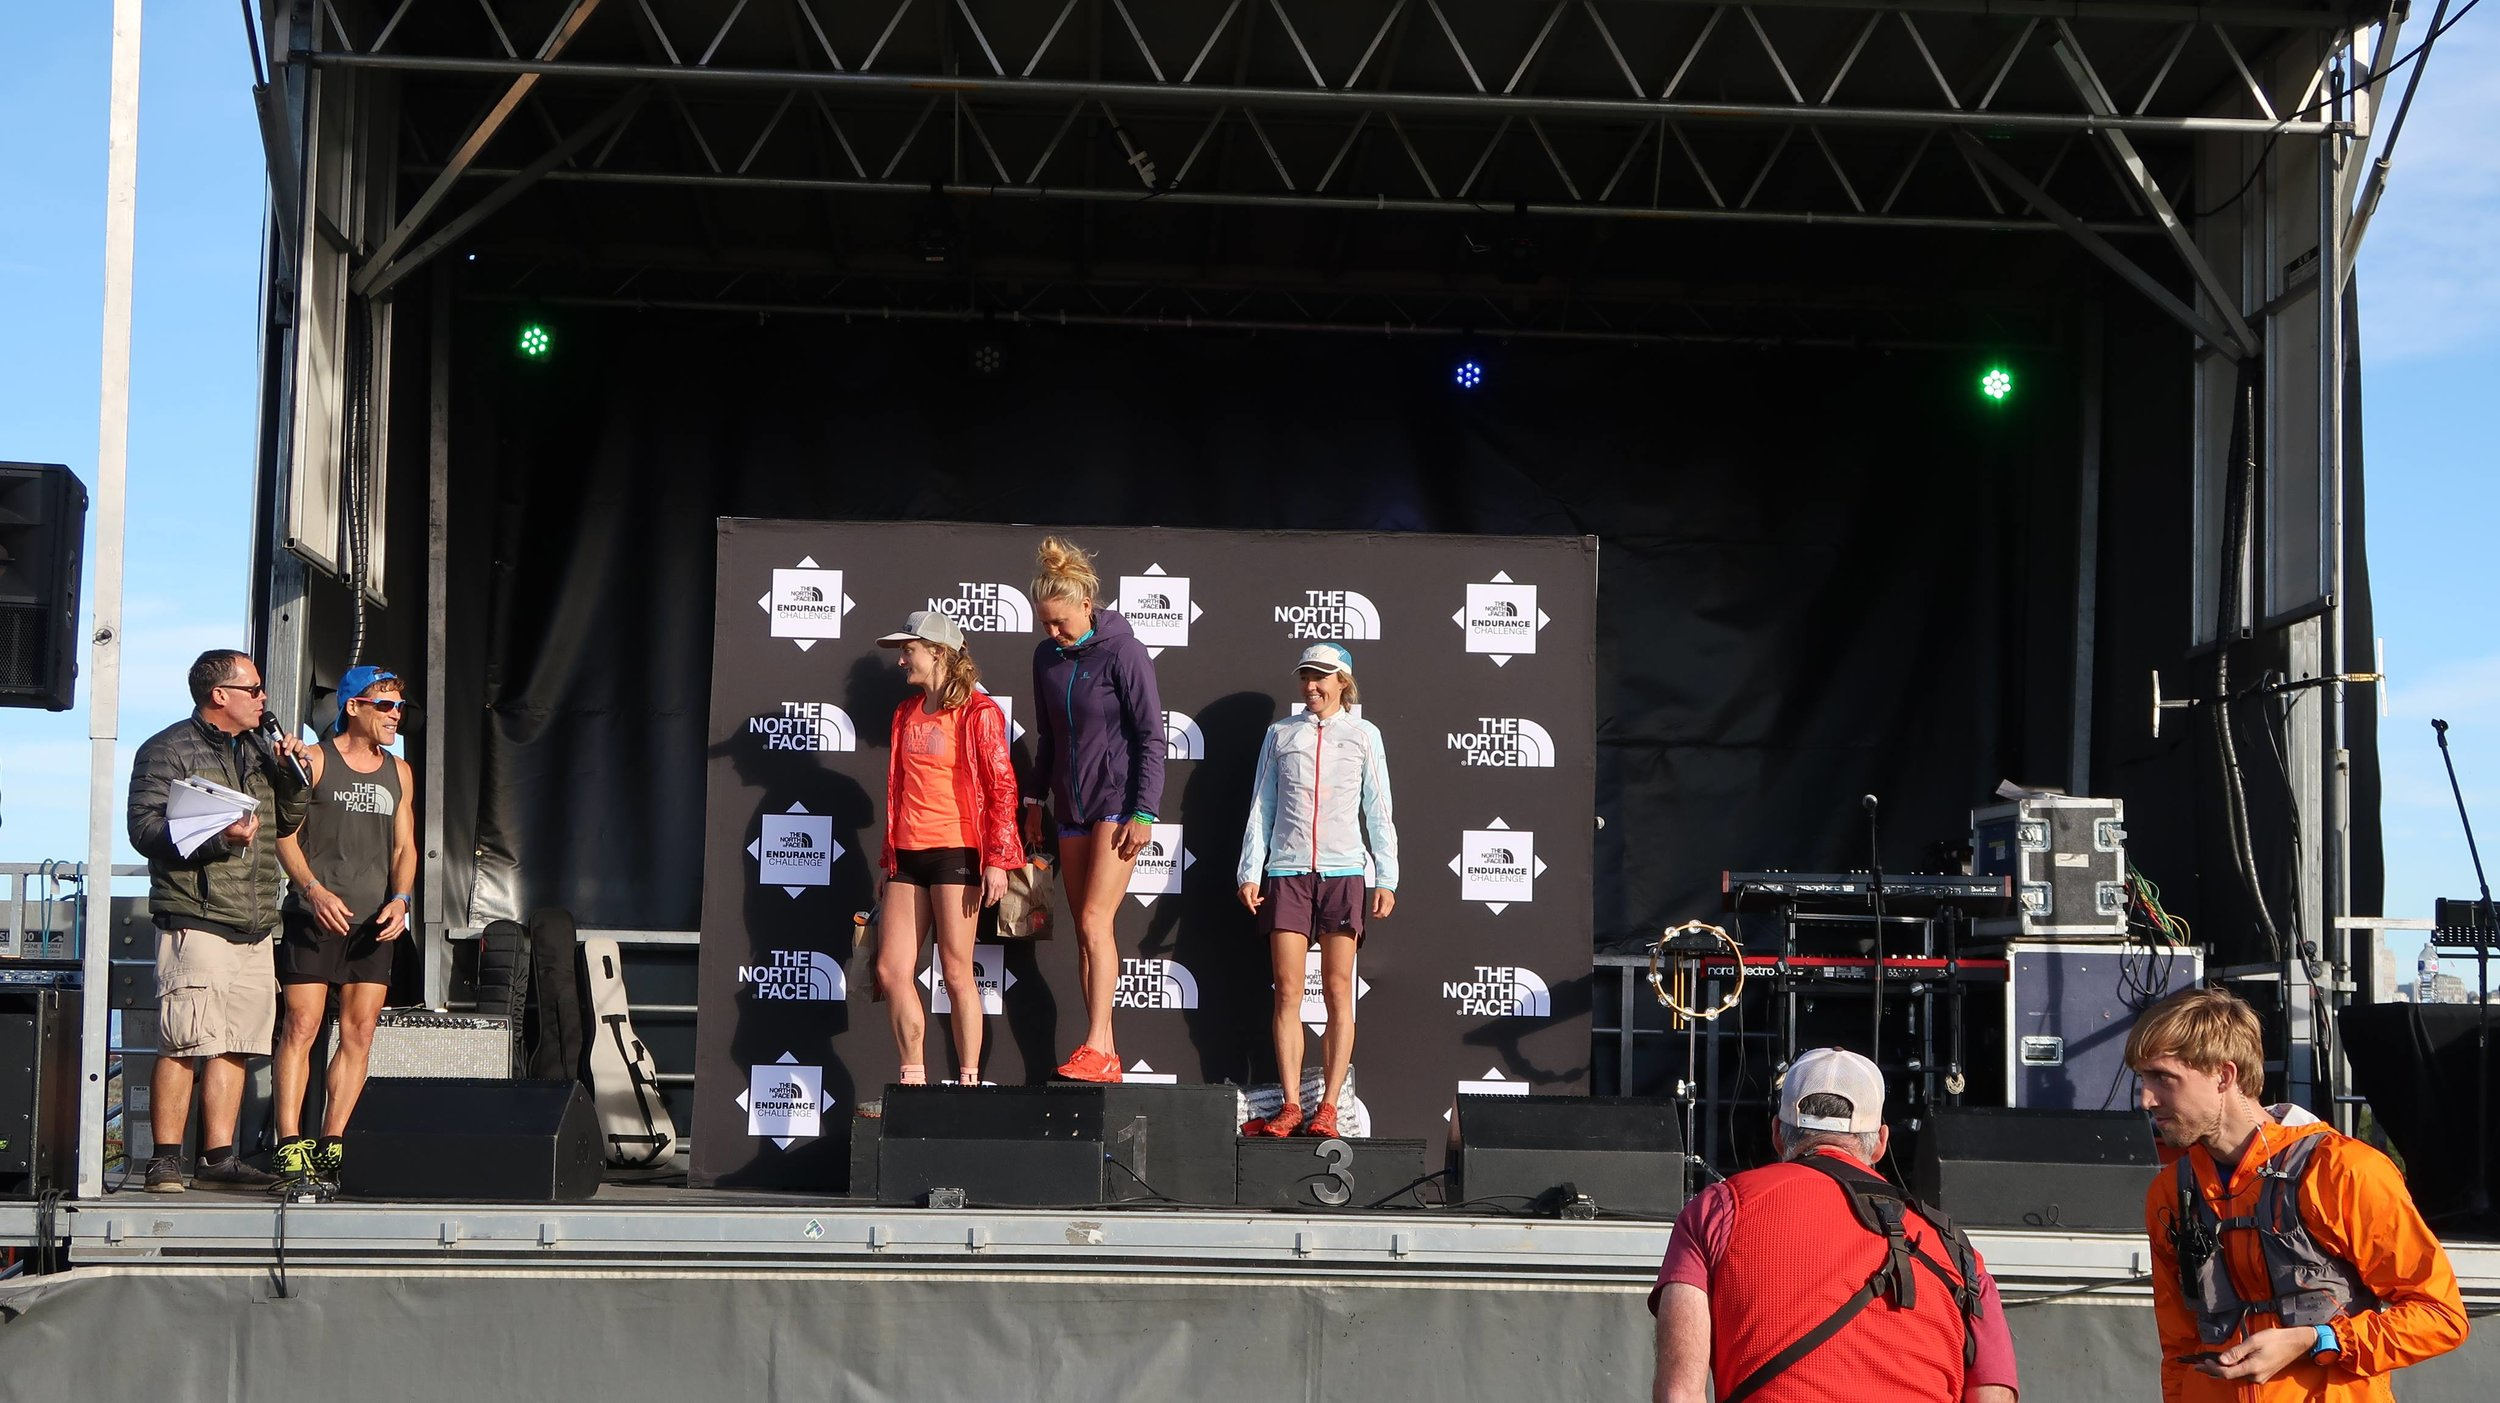 Winner Ida Nilsson, Second place: Clair Gallagher, third place: Megan Kimmel . We were so proud of Ida, Katie got a chance to run with her for 10 days in Norway when she won the Running Dream Trip with Salomon!